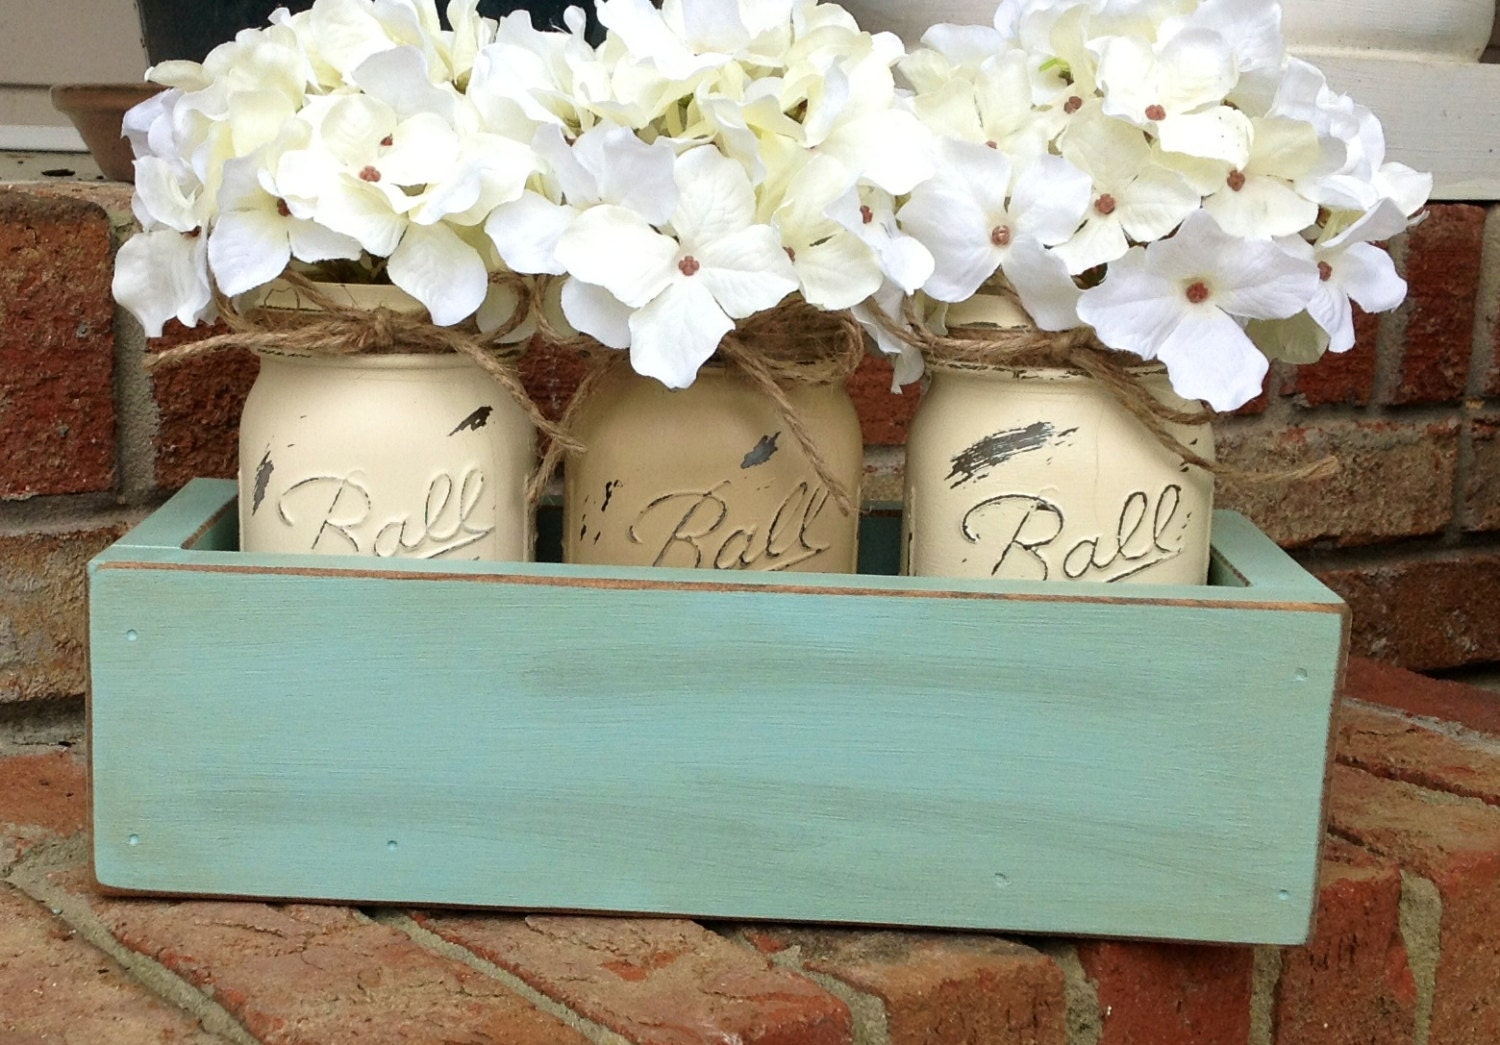 Custom Made Rustic Planter Box with 3 Painted Mason Jars. Rustic. Rustic Home Decor. Wedding Decor. Primitive. Shabby Chic. Housewears. - Kateslittleshop